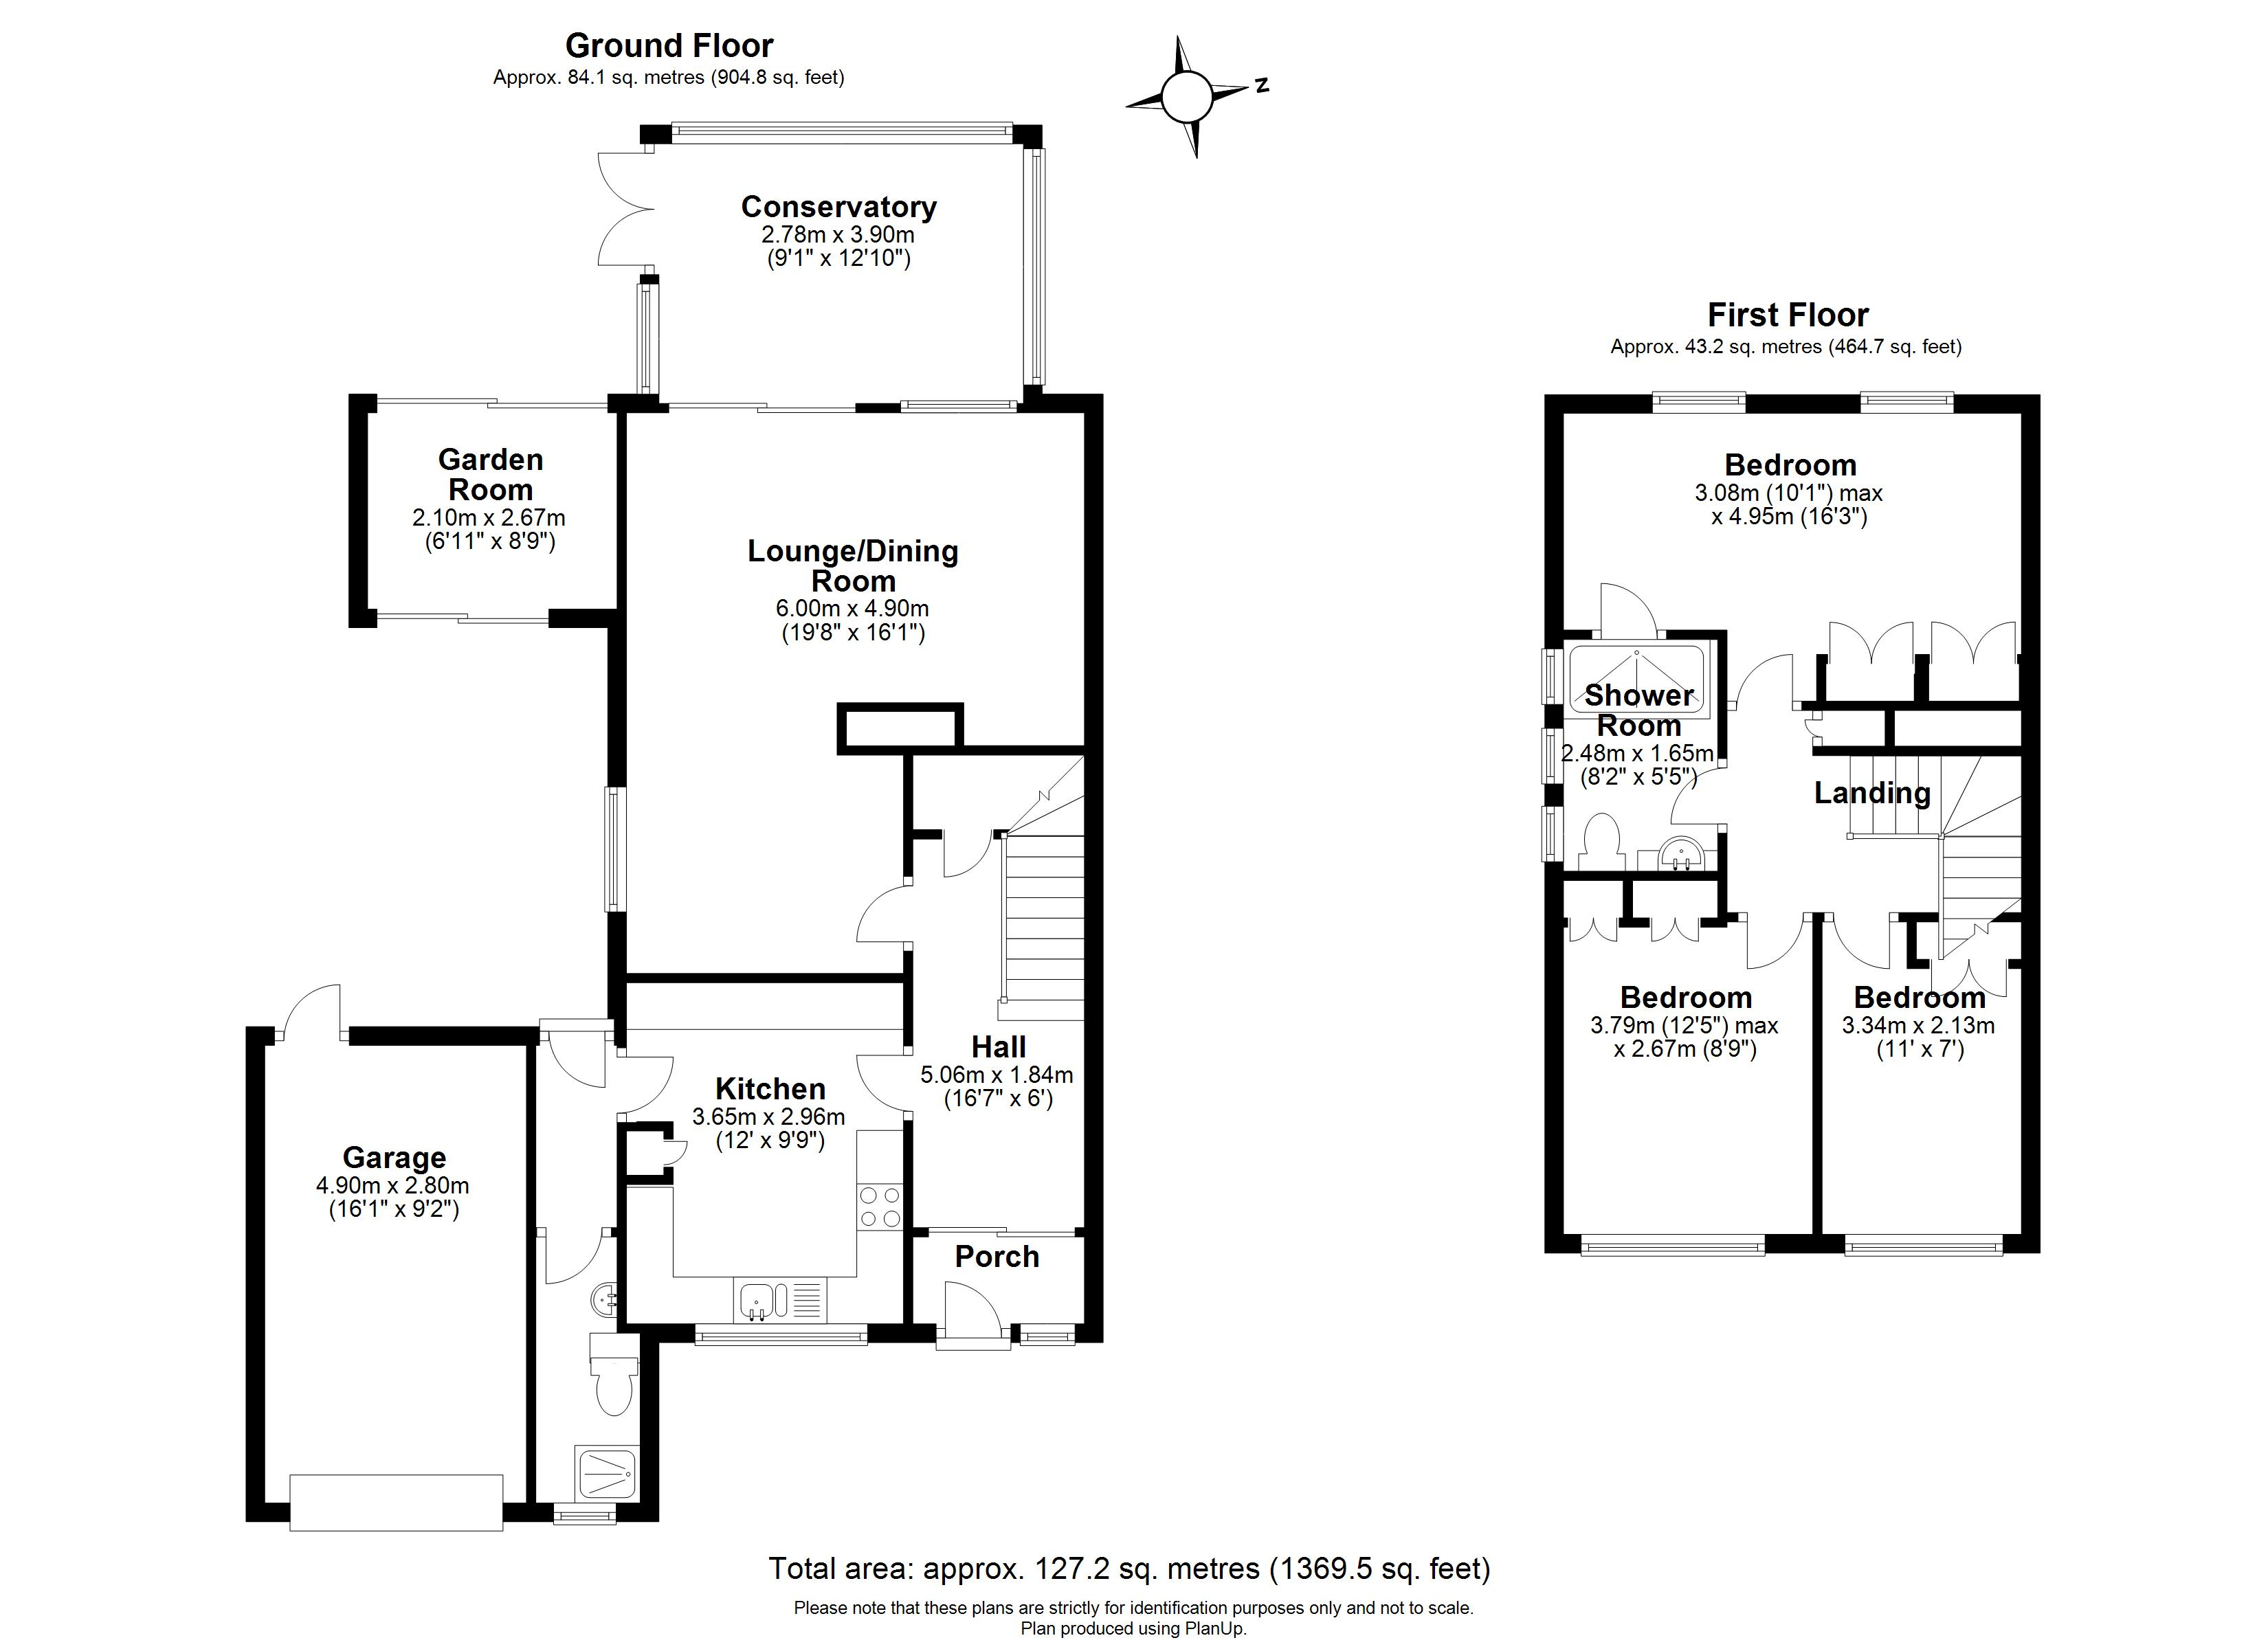 Floorplans For Redford Road, Windsor